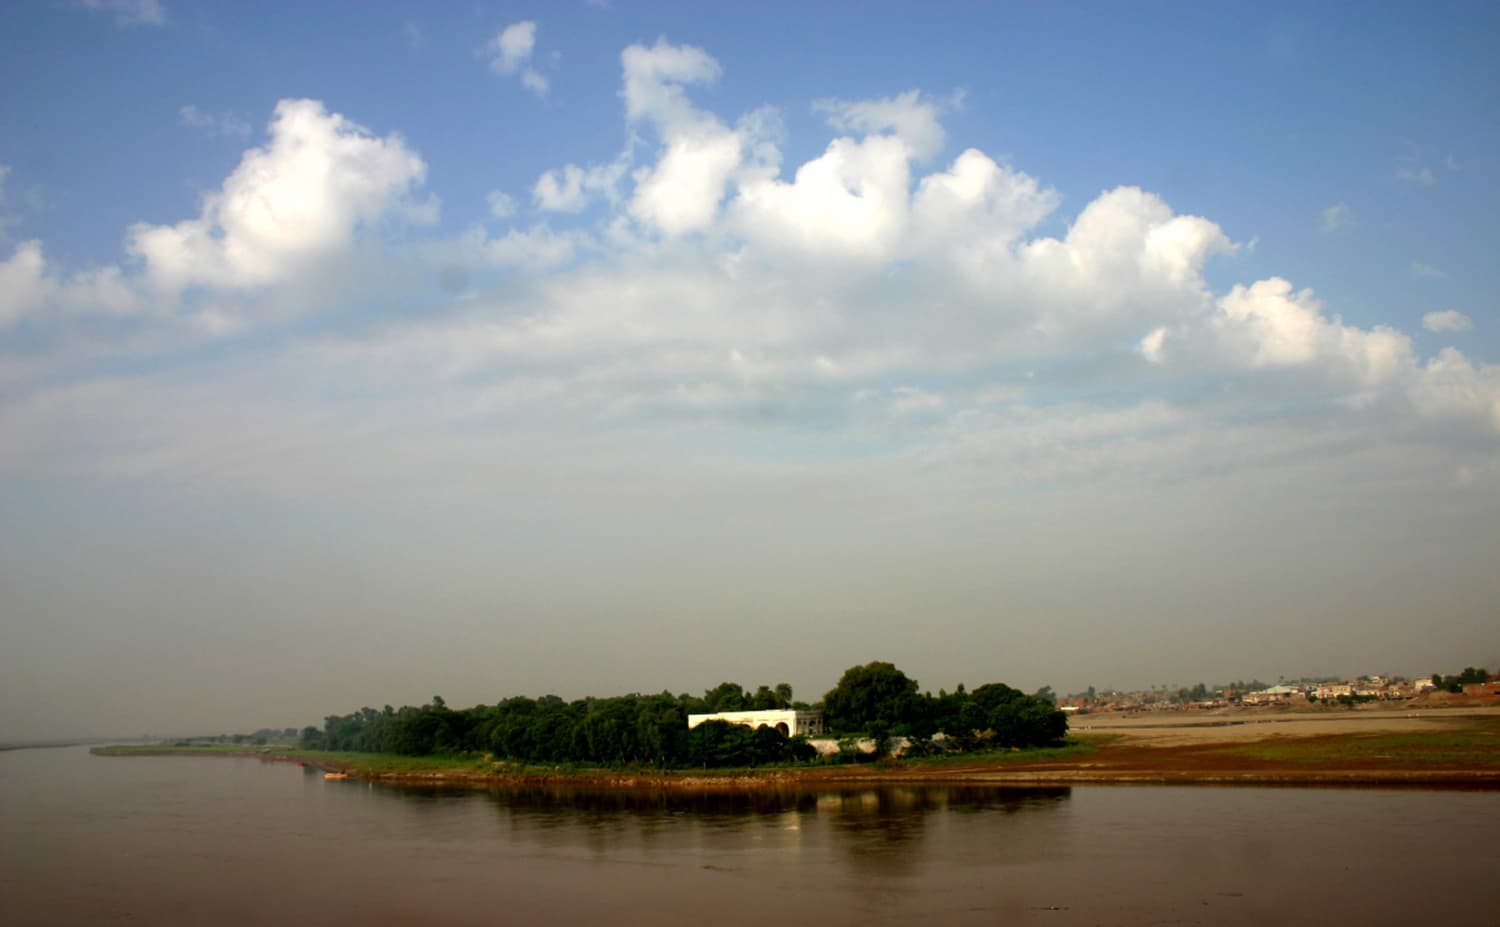 The baradari of Kamran Mirza stands on an island on the Ravi river. (Photo credit: Shaista Bukhari. CC BY-SA 3.0).